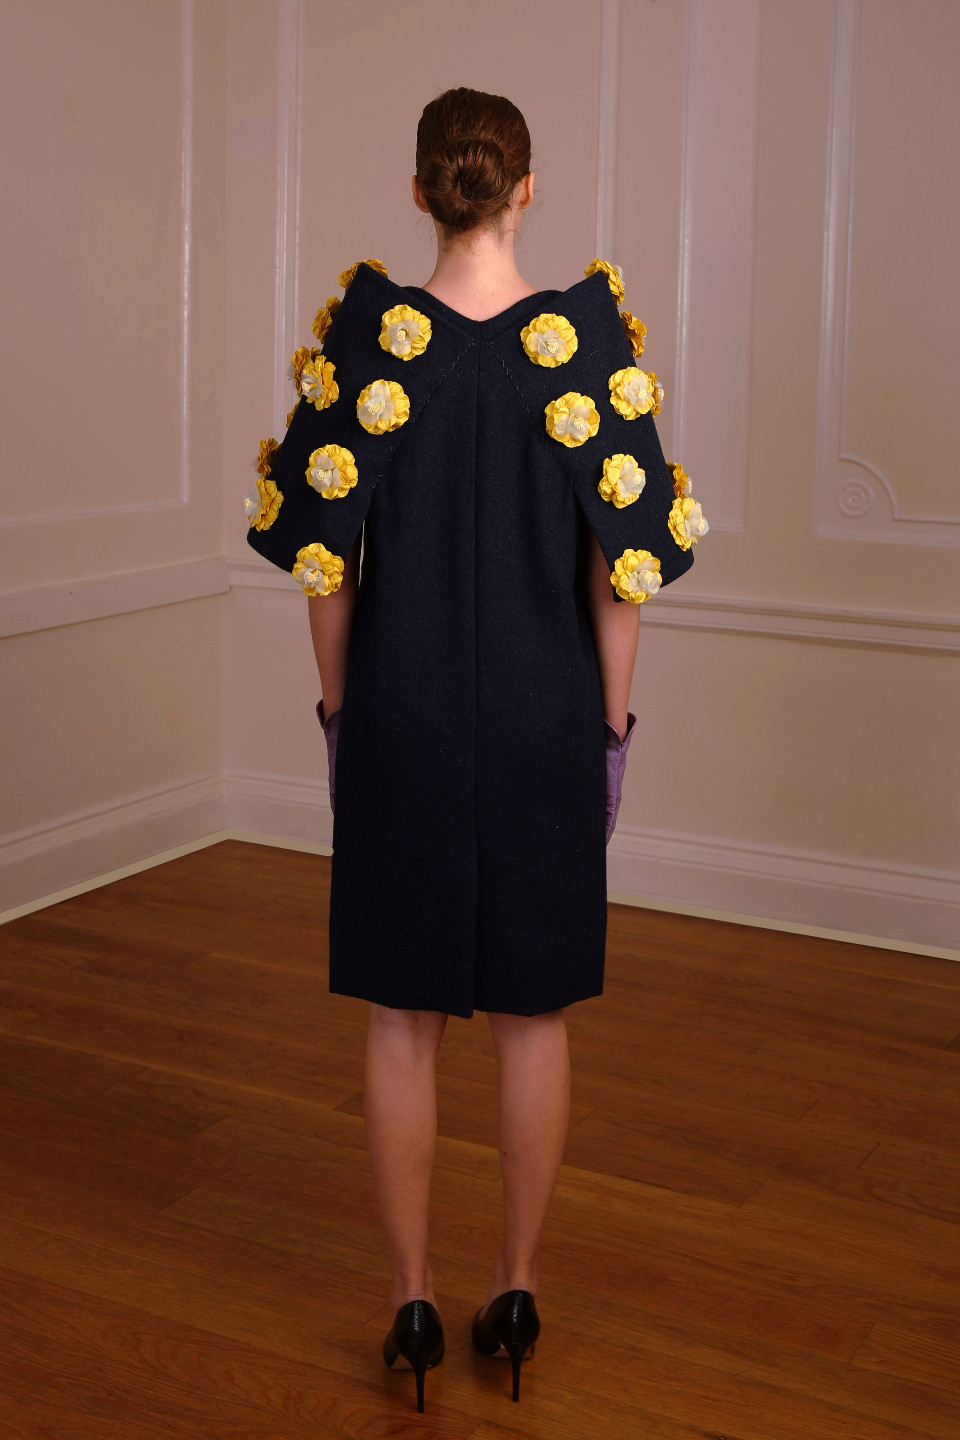 dark Blue tweed coat with yellow applique flowers - chic outfit couture london